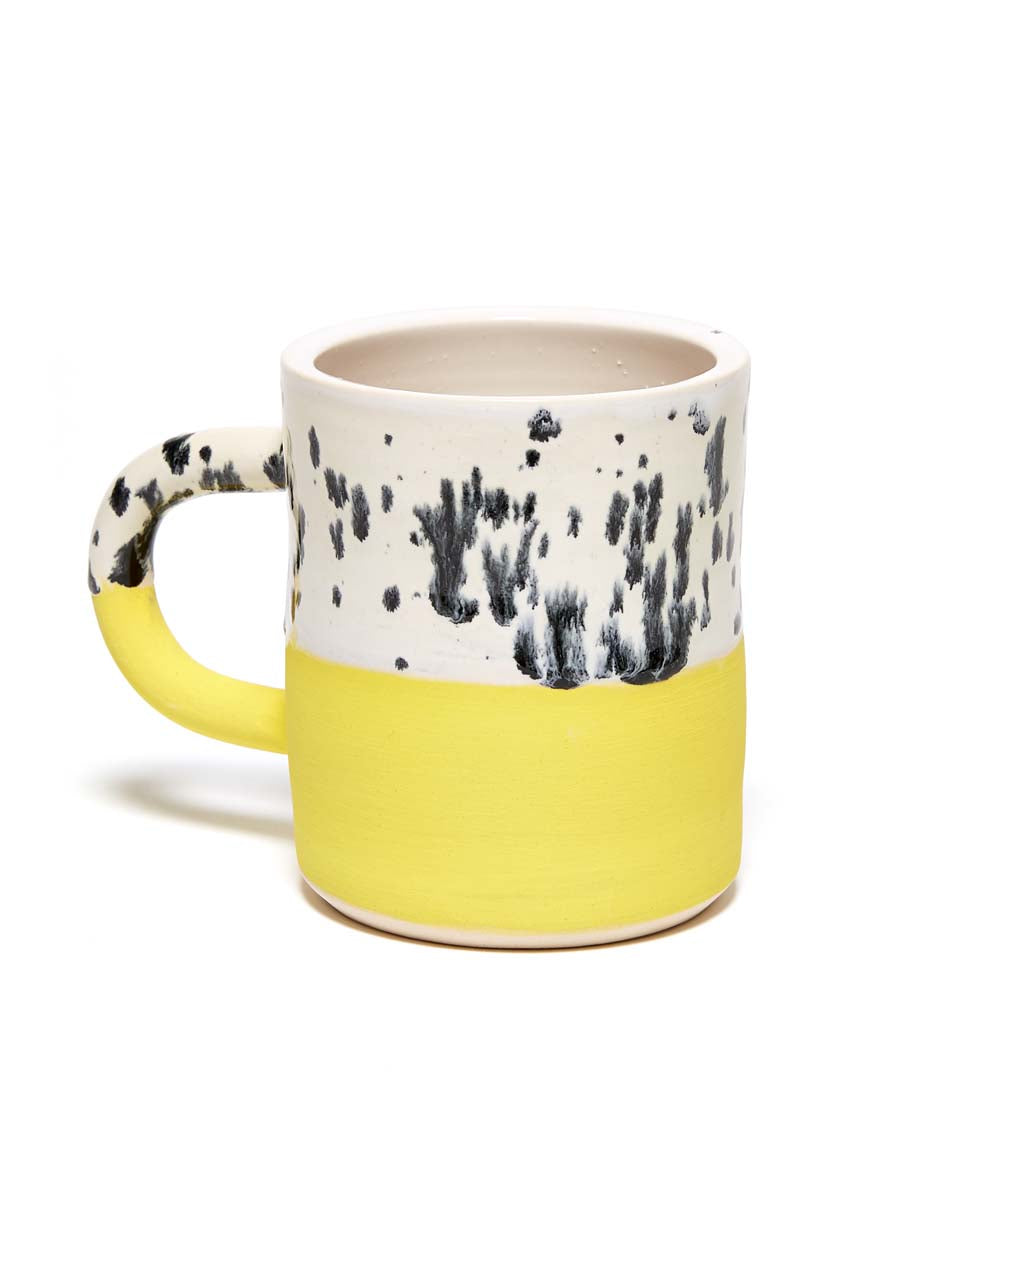 This mug features a two-tone design, with black dots on top and yellow on bottom.